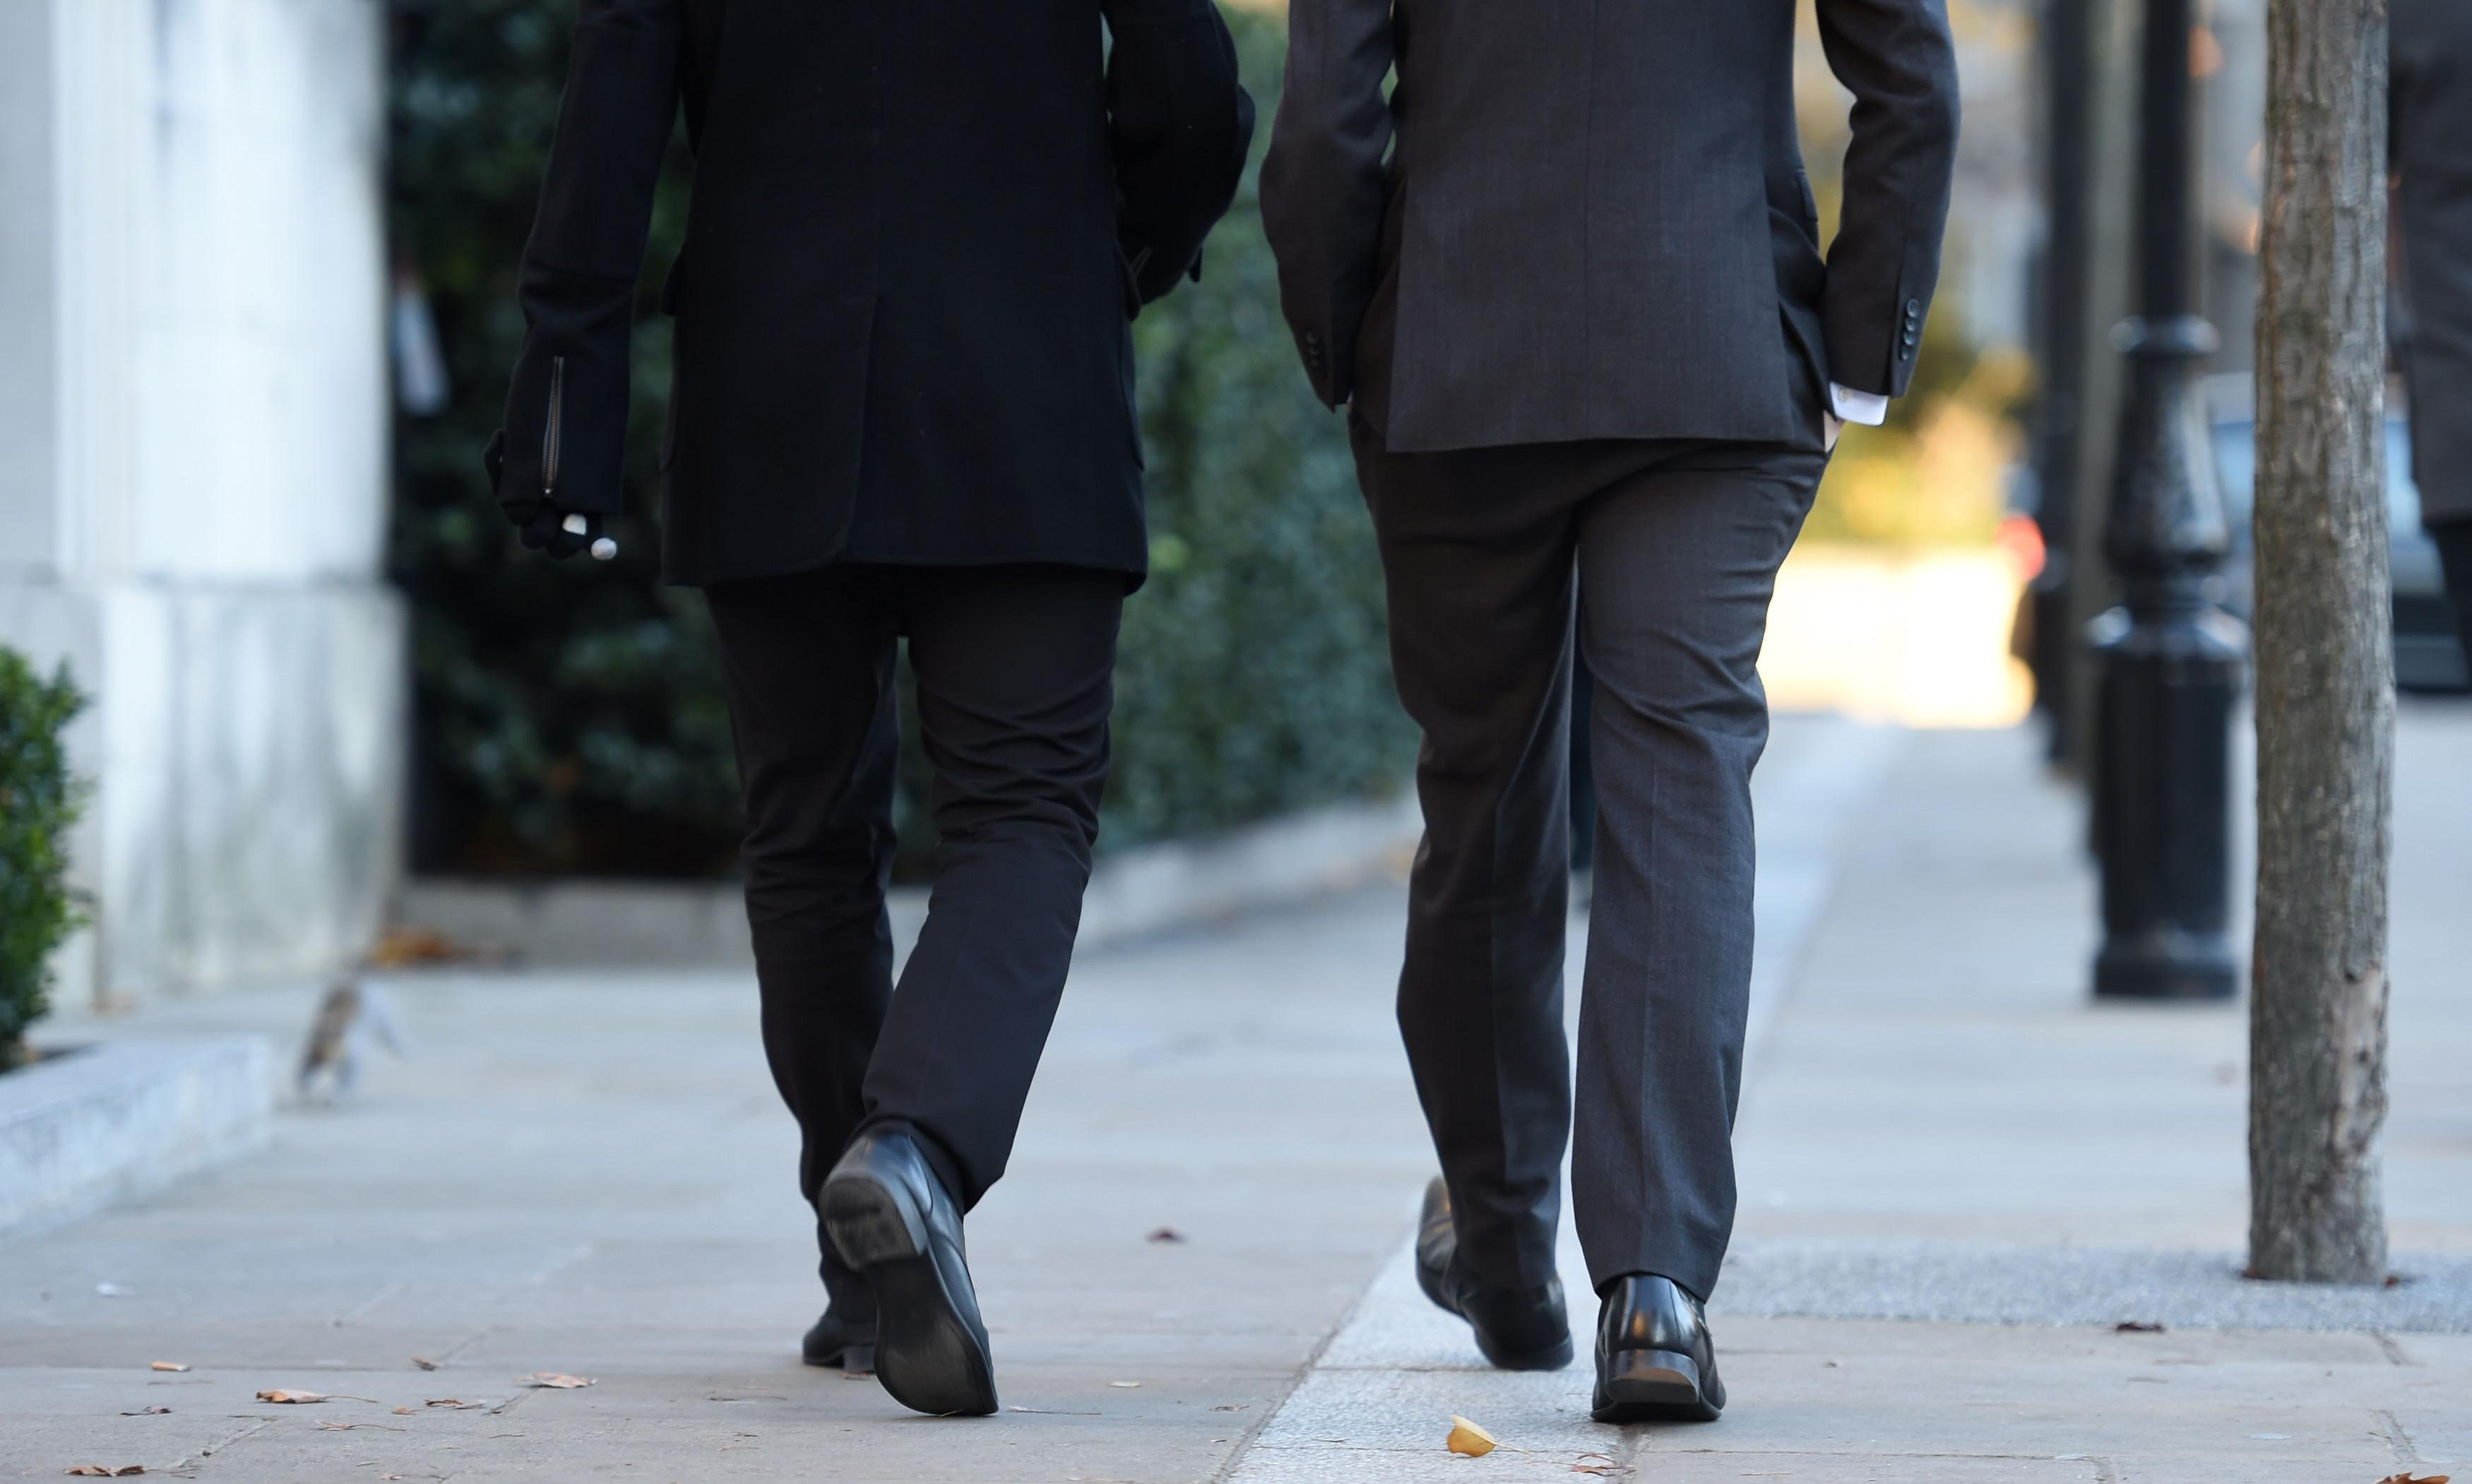 Measures to curb executive pay have flopped, says thinktank